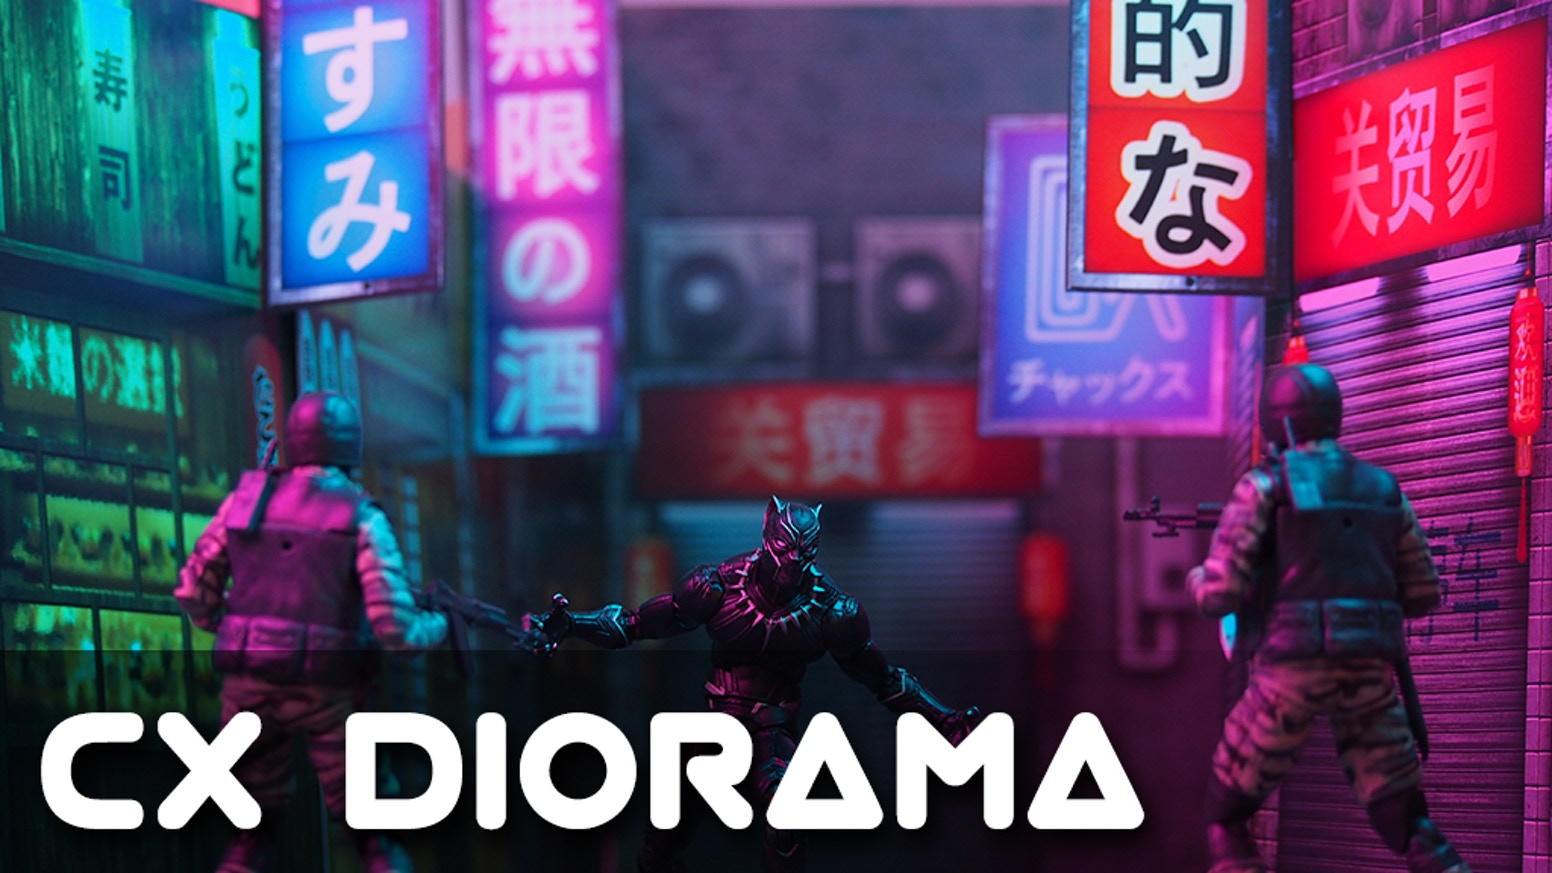 Printable D.I.Y. Dioramas for 1:12 and 1:18 scale for collectible action figures